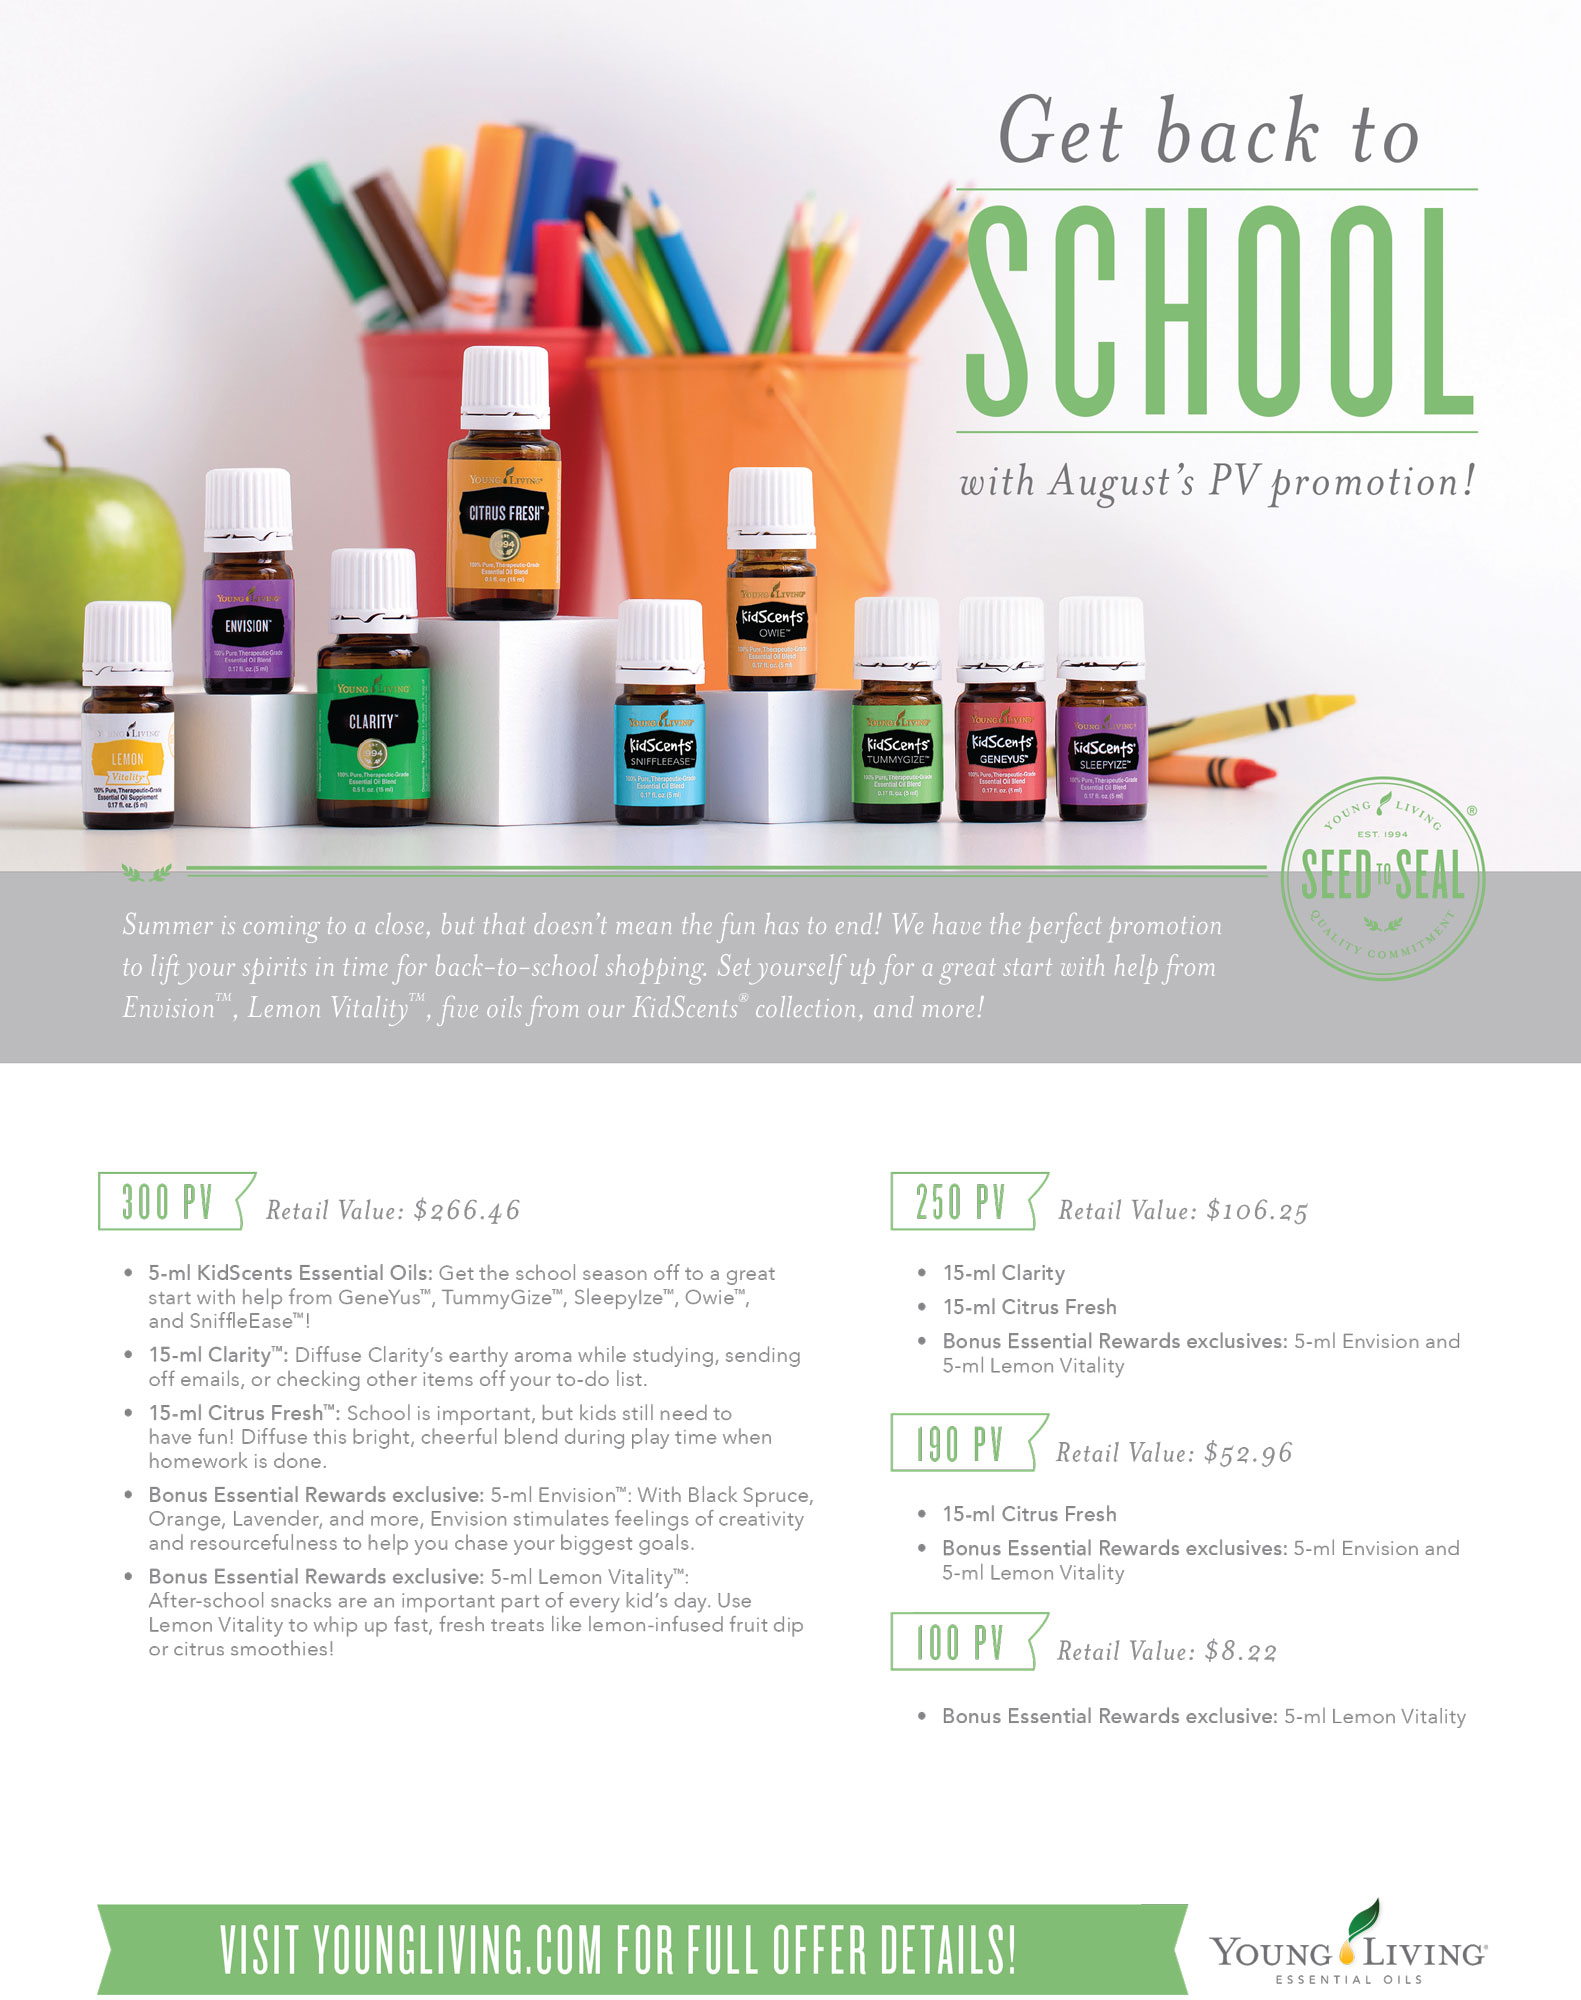 Young Living Essential Oils August 2017 Back to School PV Promo | Rush & Ramble